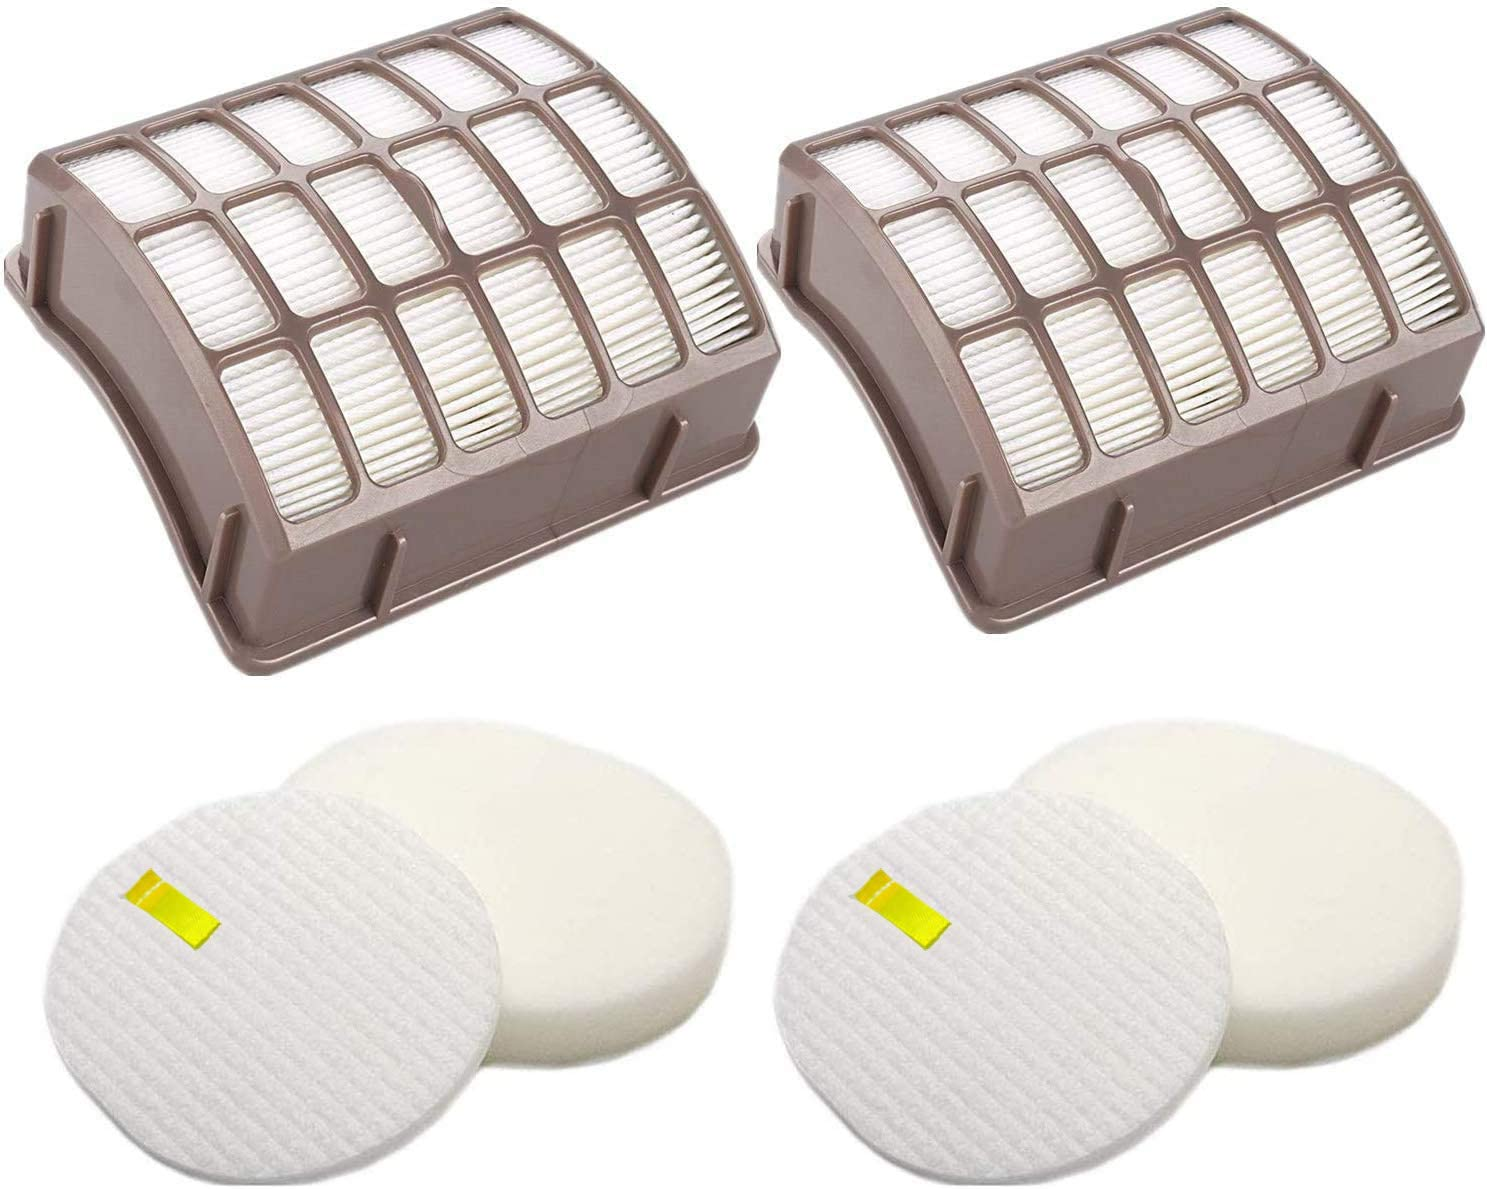 2 Pack Hepa & Foam & Felt Filters Replacement for Shark Navigator Professional NV70, NV70 26, NV71, NV80, NV80 26, NVC80C, NV90, NV95, UV420 Vacuums, Replaces Part # XFF80 & XHF80